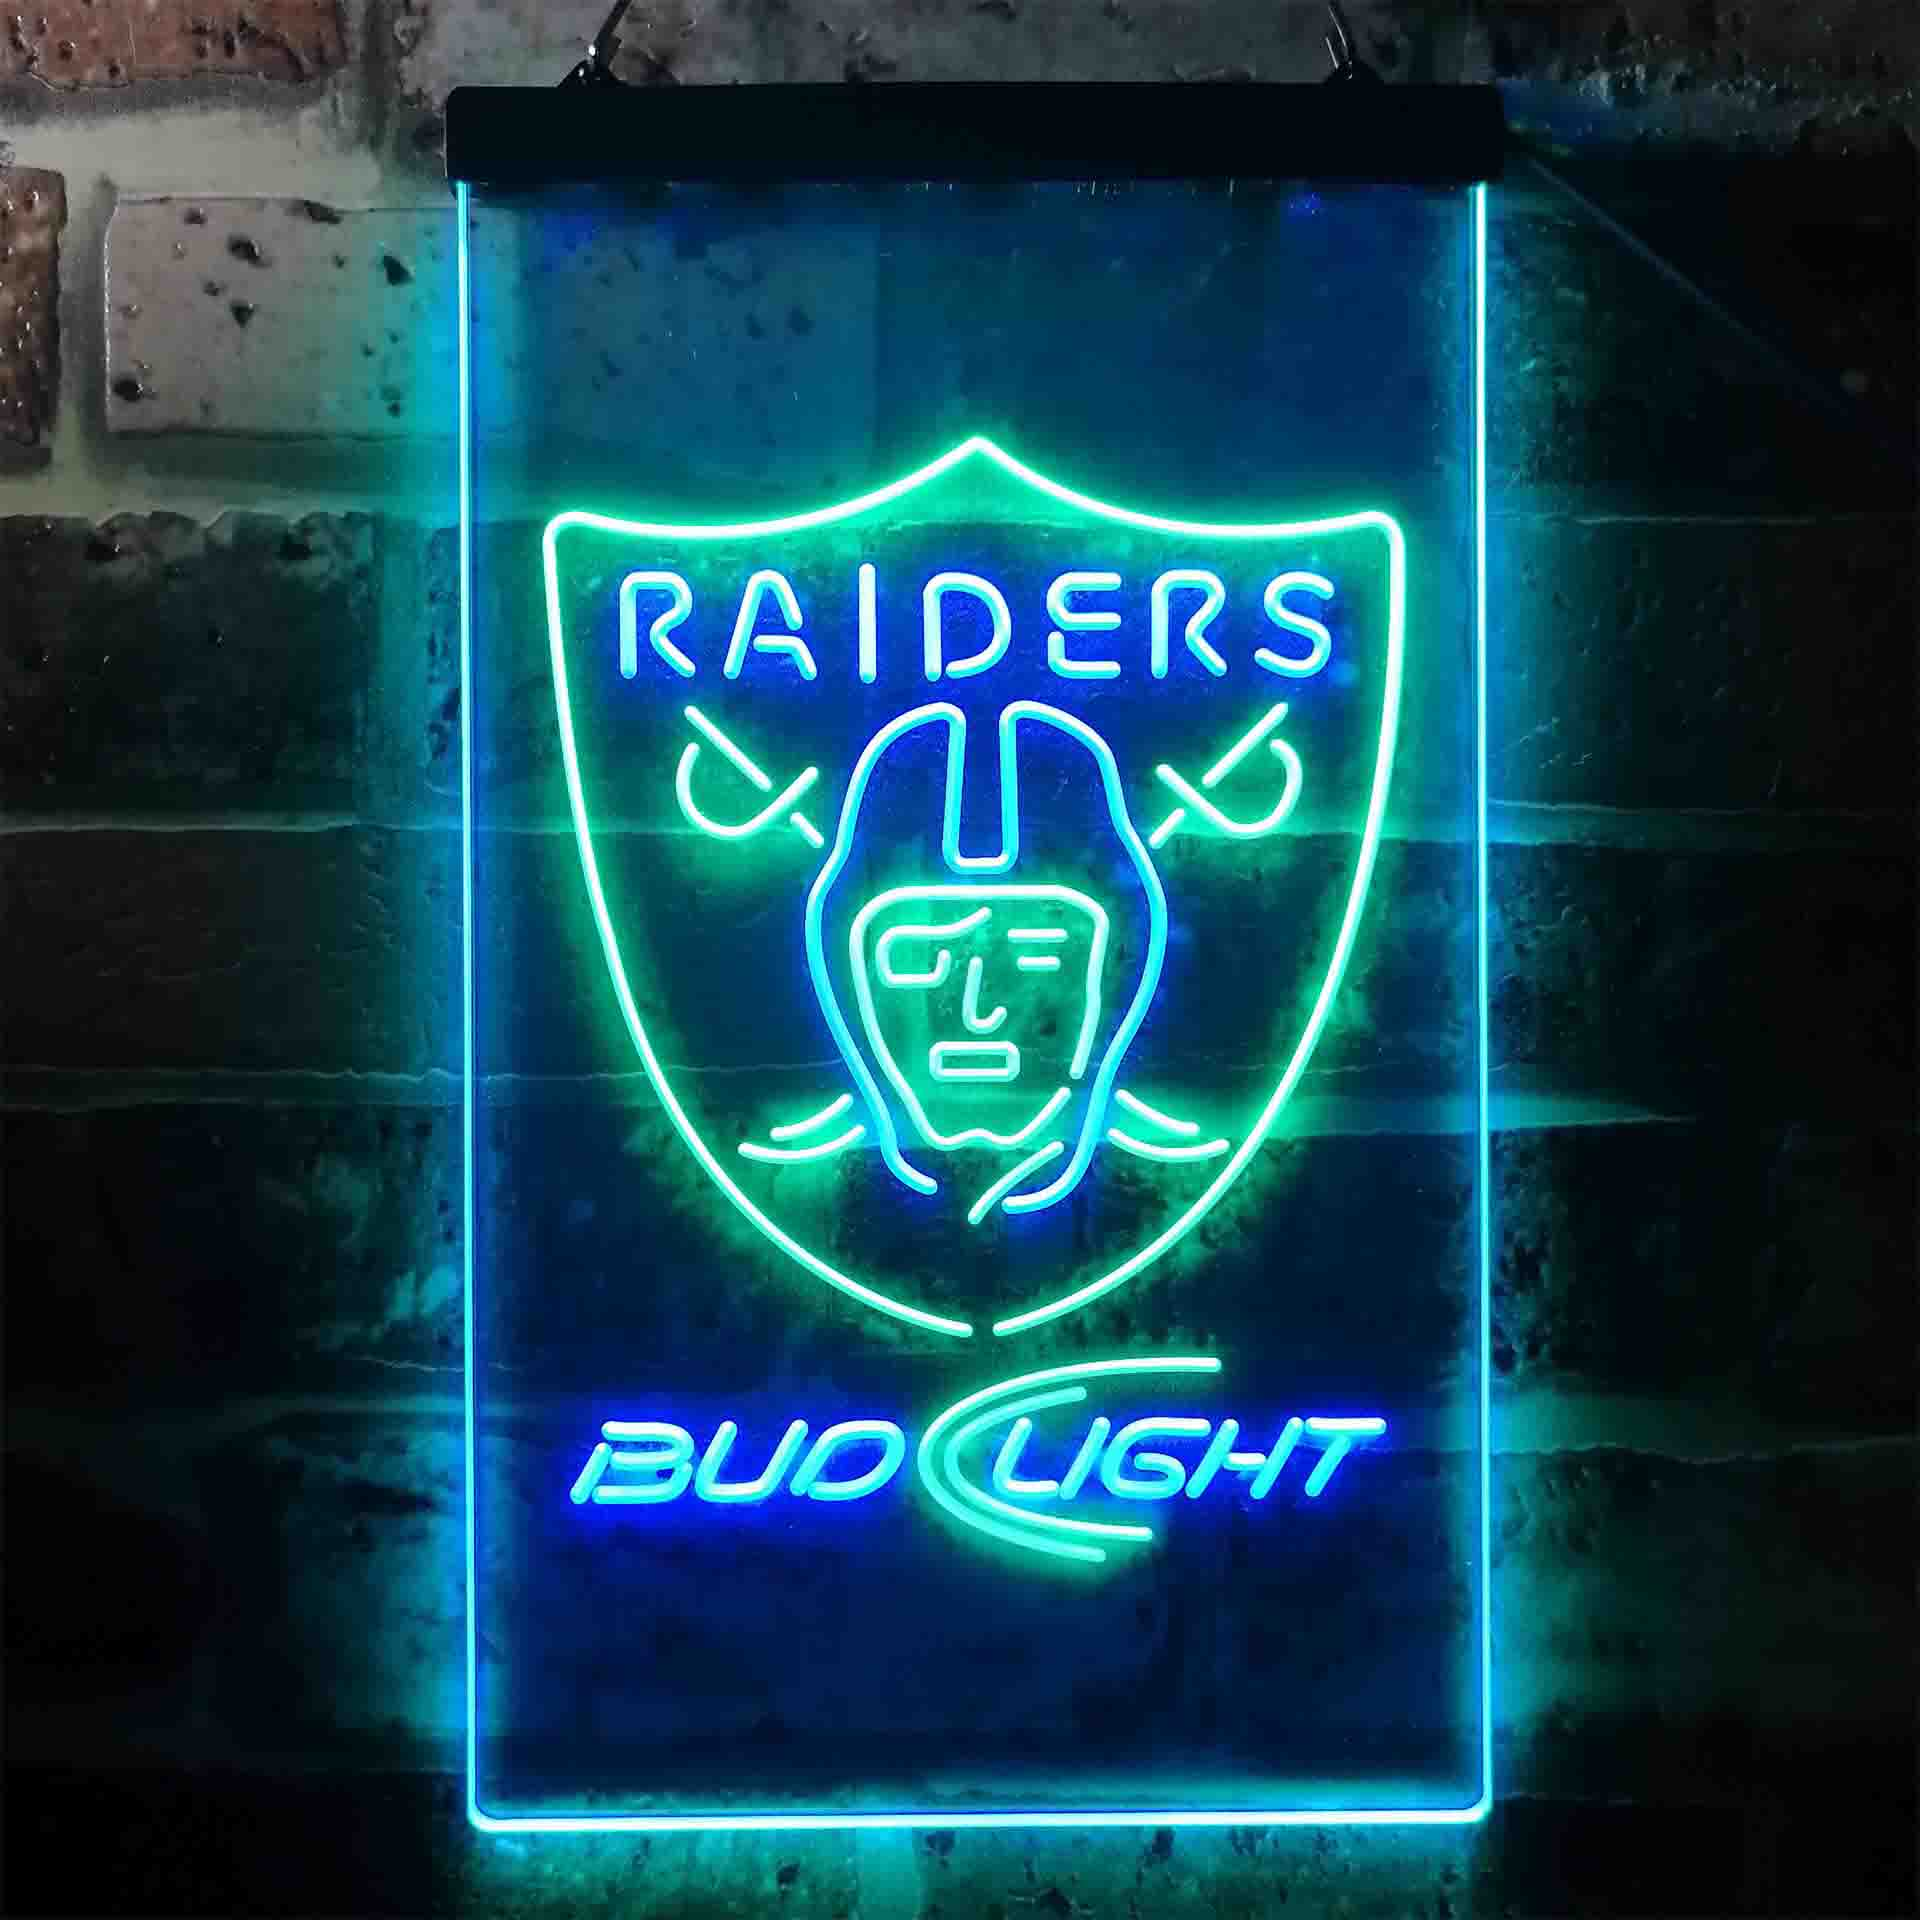 Bud Light Oakland Raiders Dual Color LED Neon Sign ProLedSign